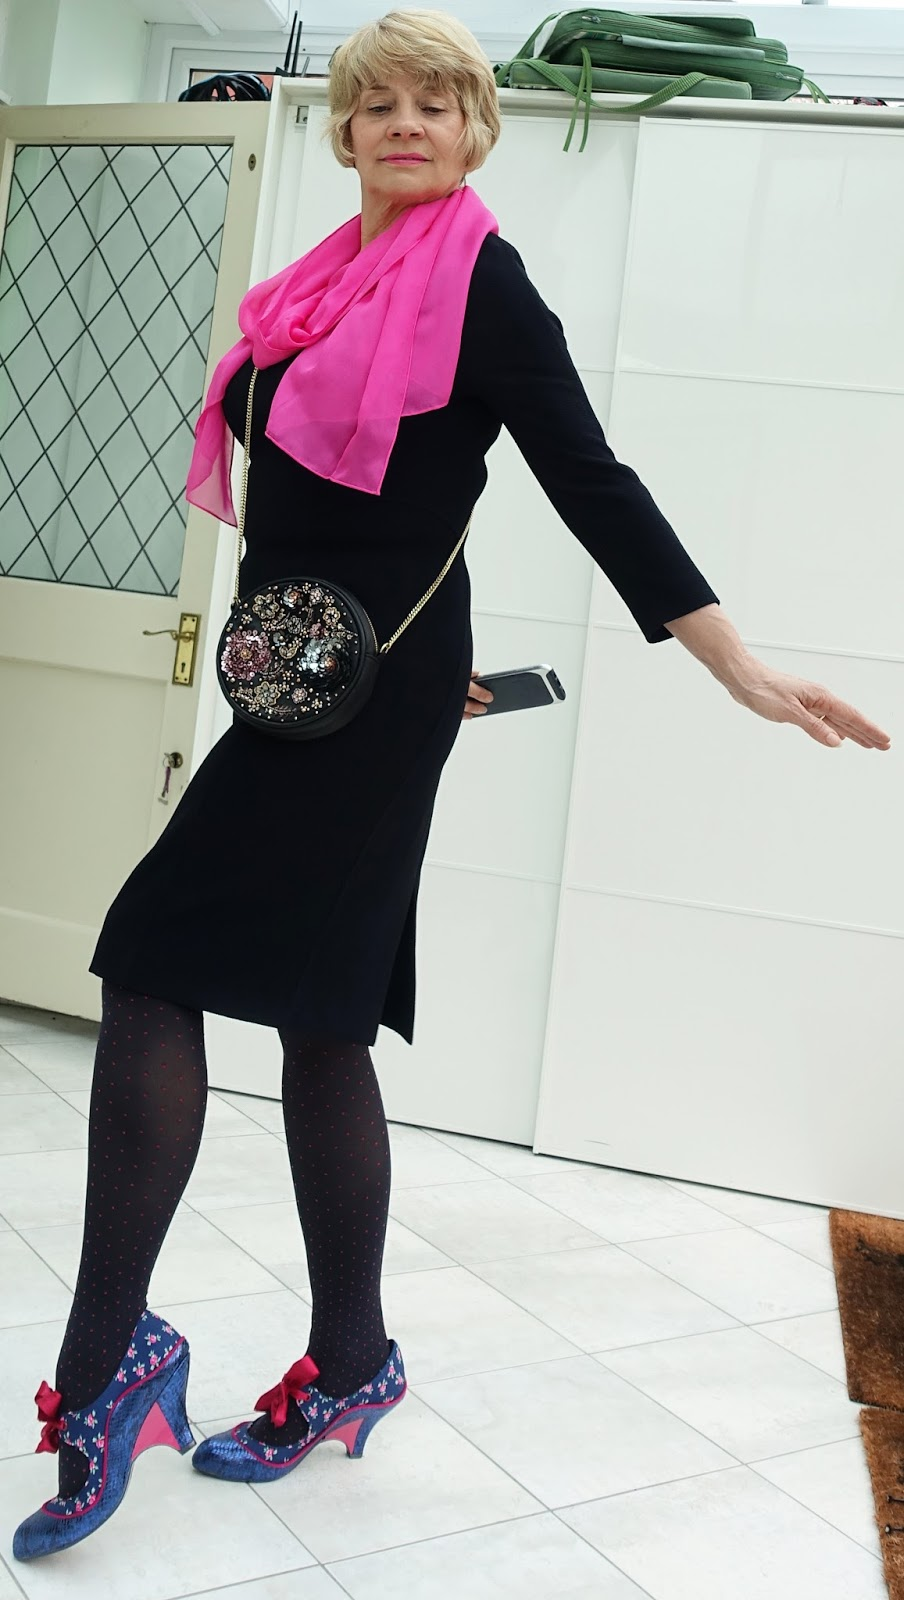 How to use accessories to transform a dull outfit, in this case a plain navy shift dress, Over 40s blog Is This Mutton? adds fuchsia pink and blue and a cute sequinned bag.